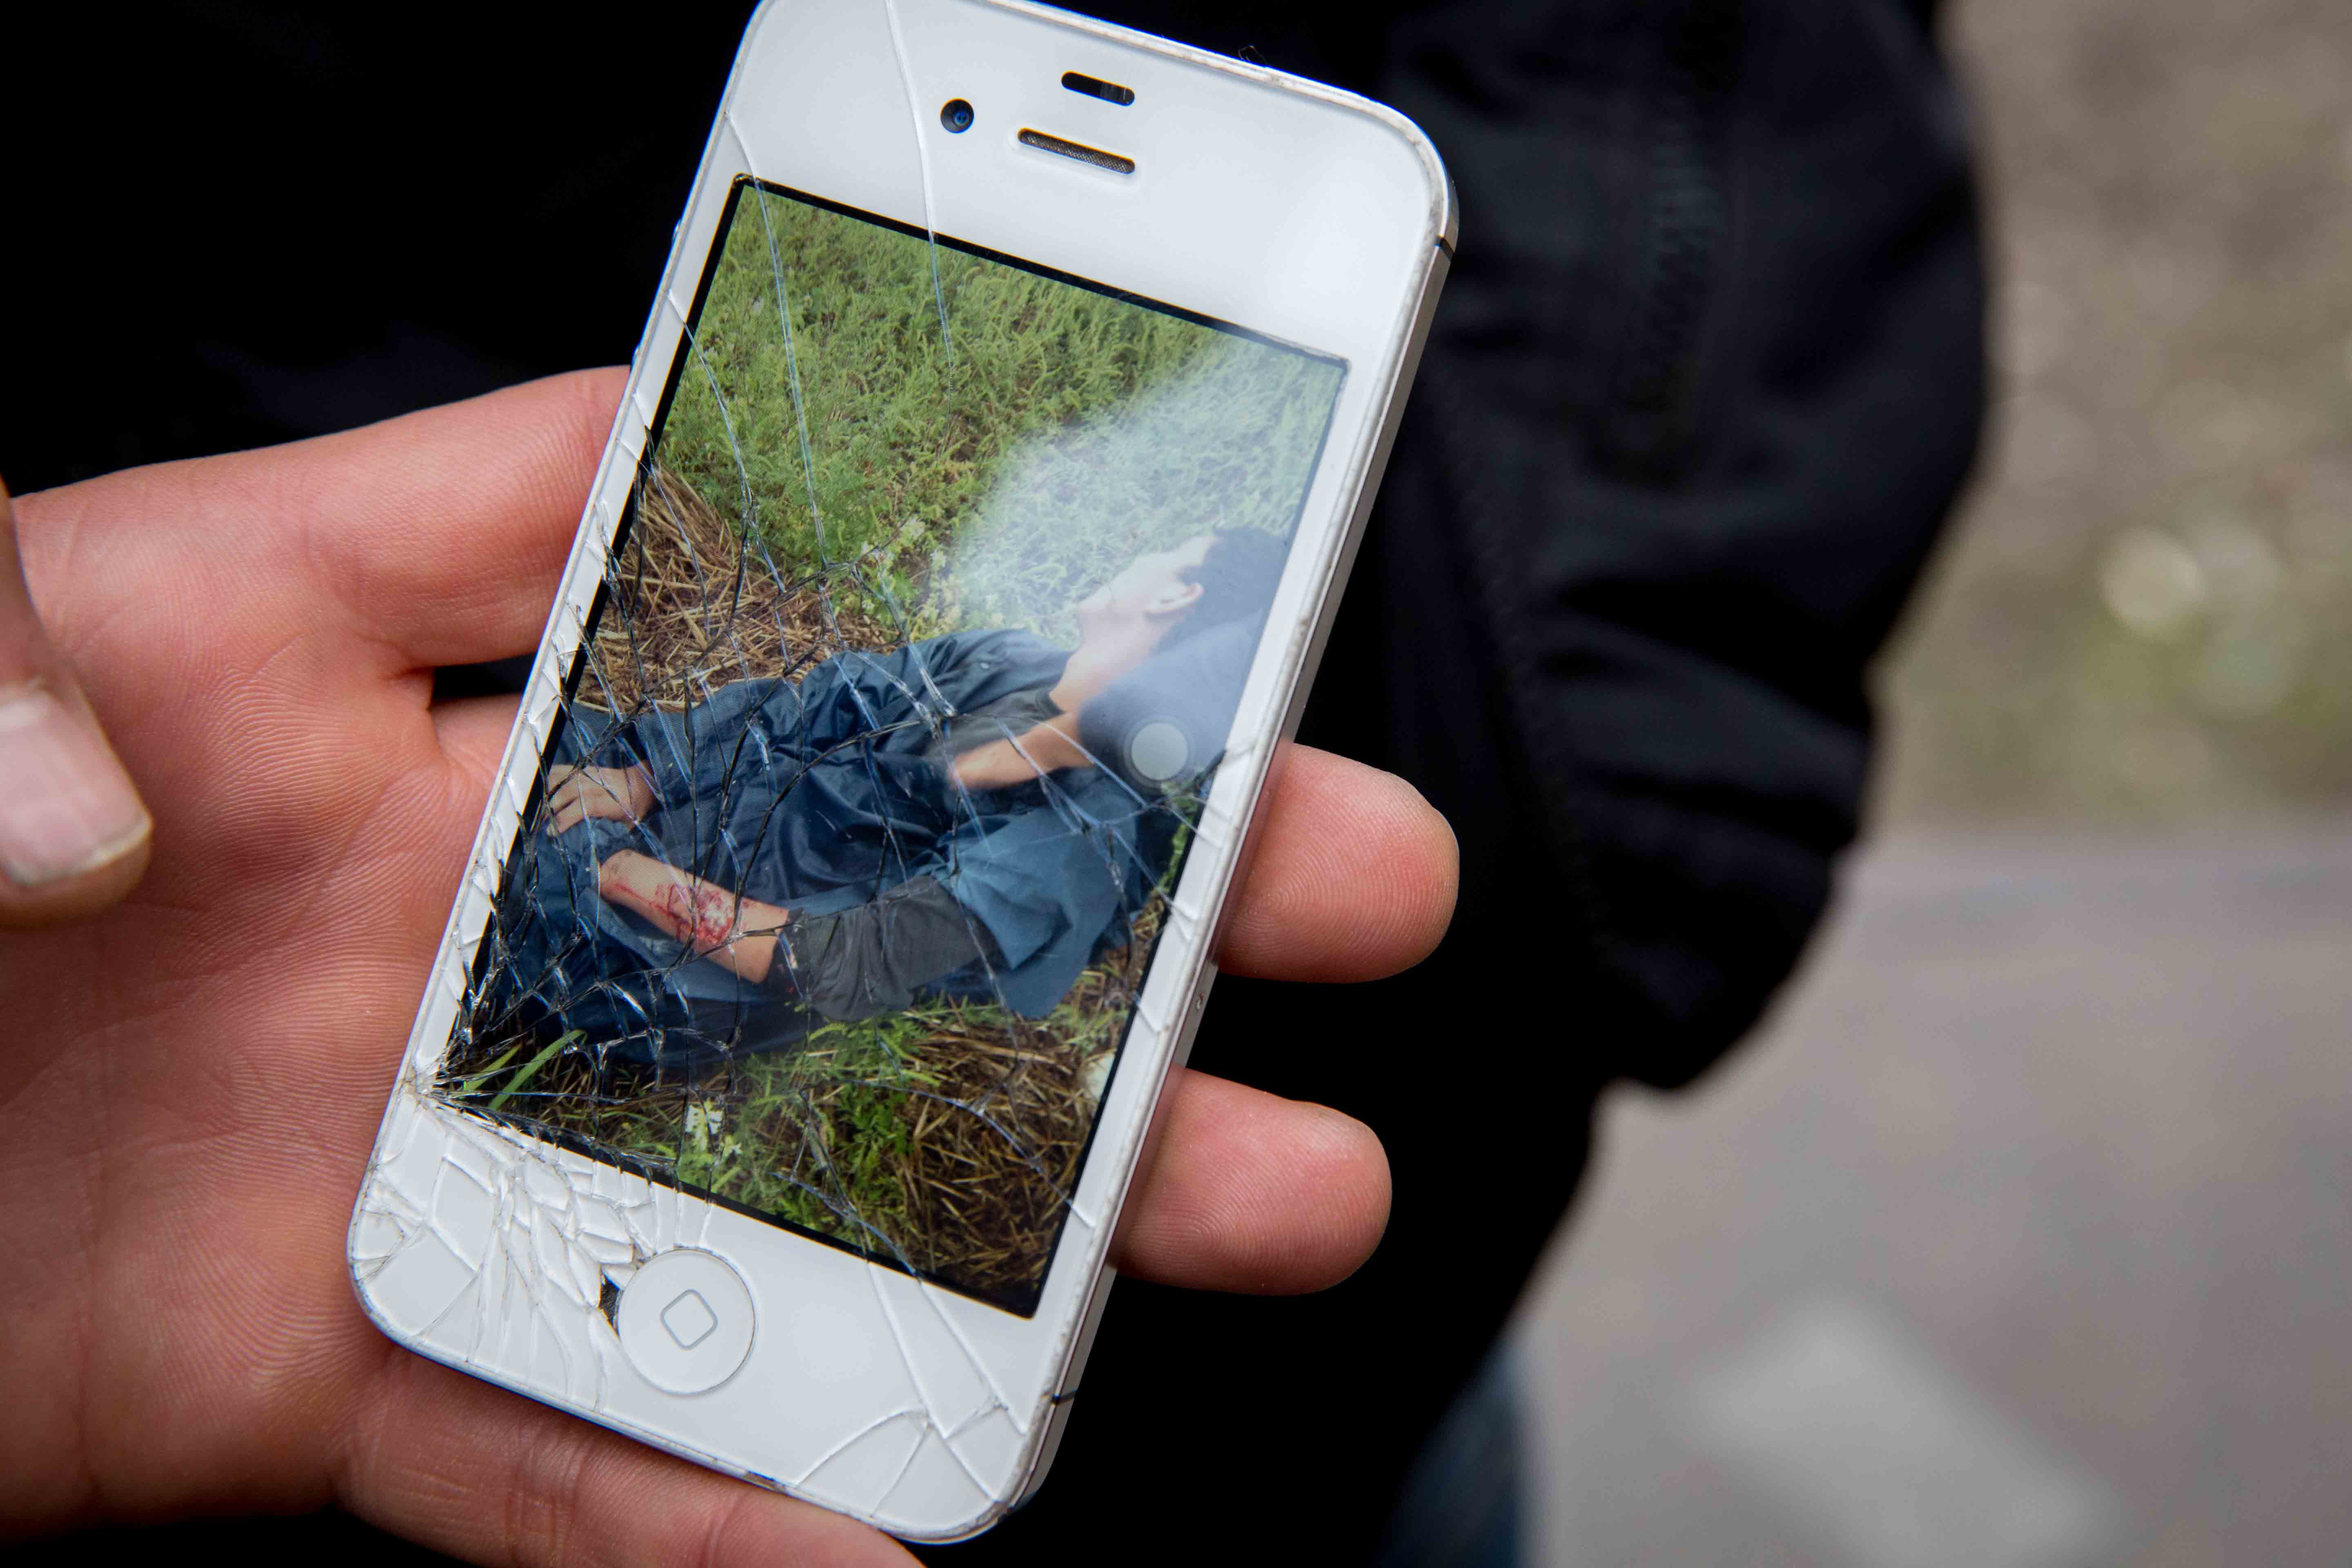 Several Afghans mentioned the dogs that the Hungarian border guards now use and how they feared them. One Afghan showed pictures on his phone that are making the rounds of a young man with serious dog bites. Photo: Martine van Bijlert